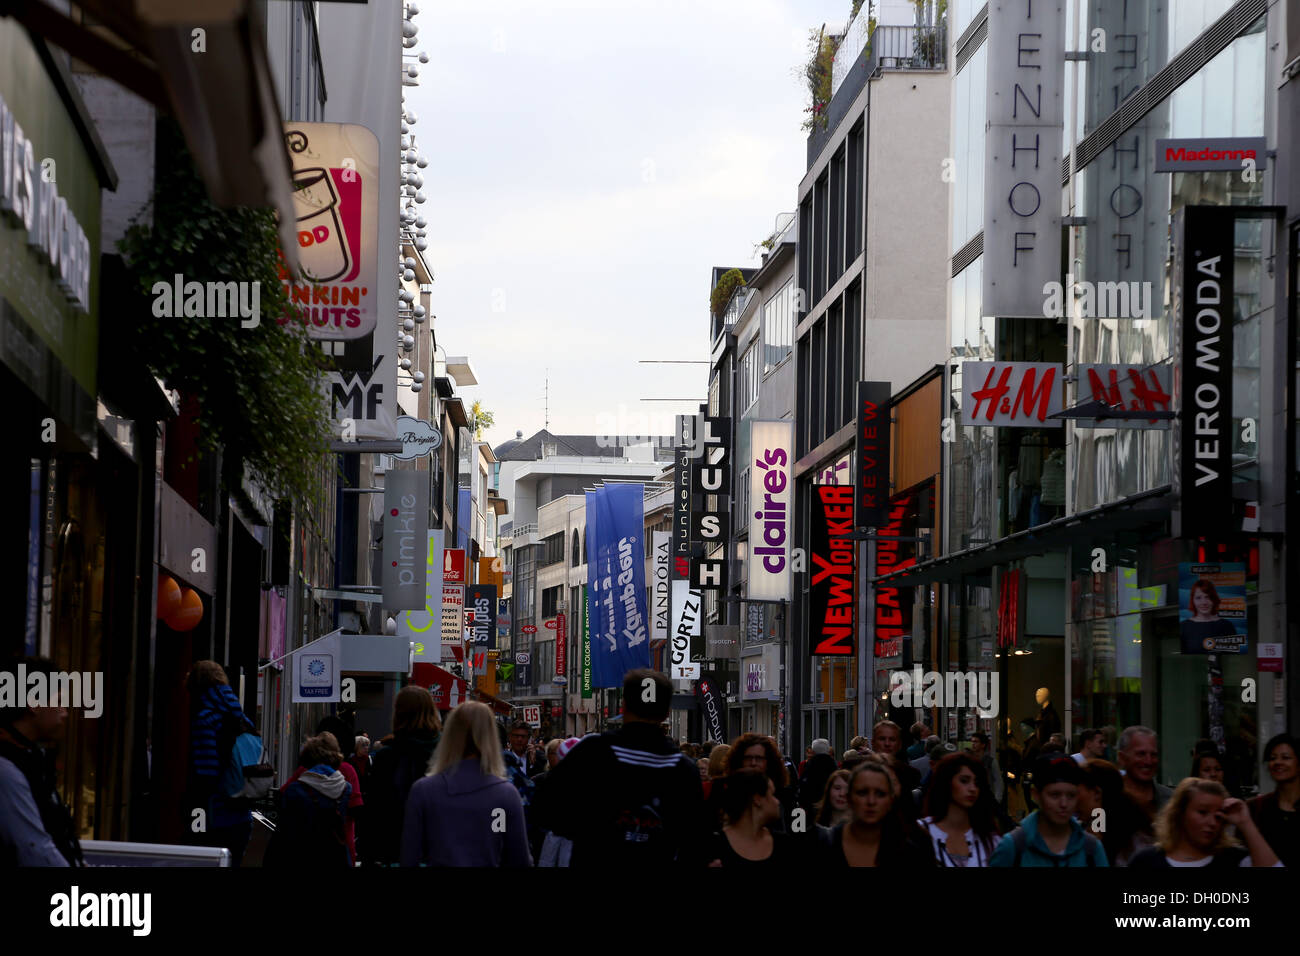 A View Of A Shopping Street In Cologne City Centre Stock Photo 62091039 - Alamy